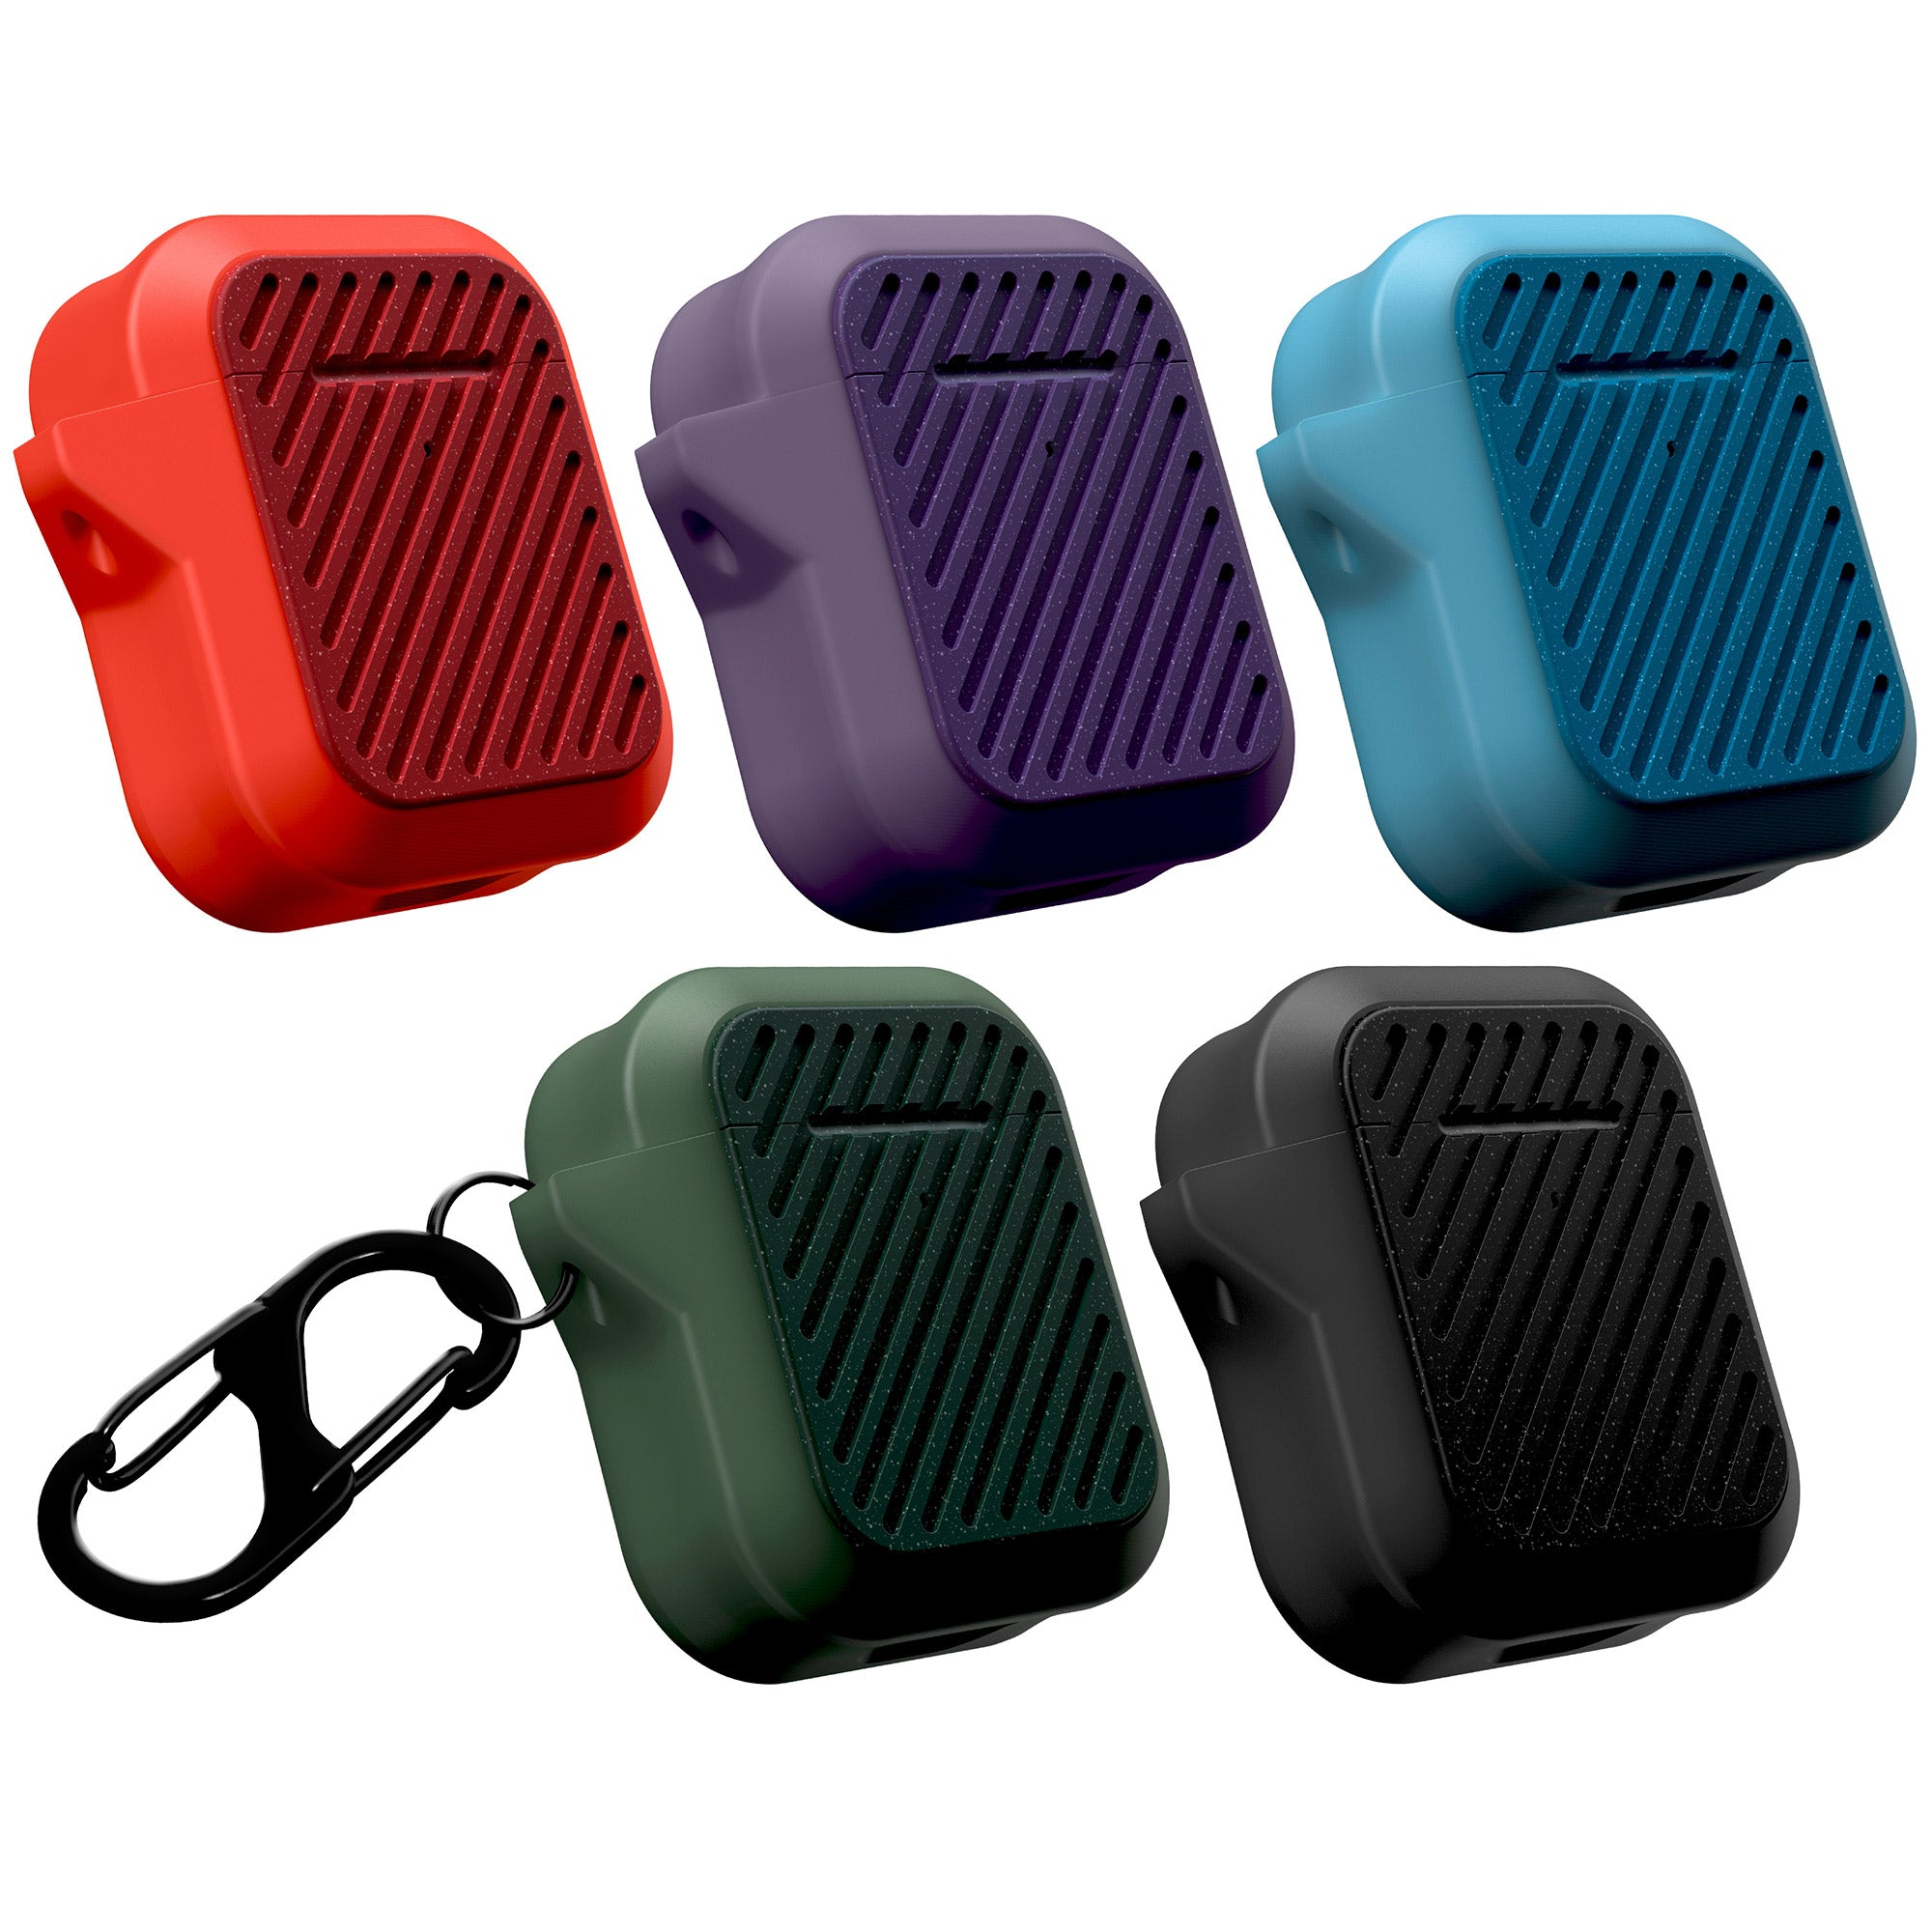 LAUT-CAPSULE IMPKT for AirPods-Case-AirPods